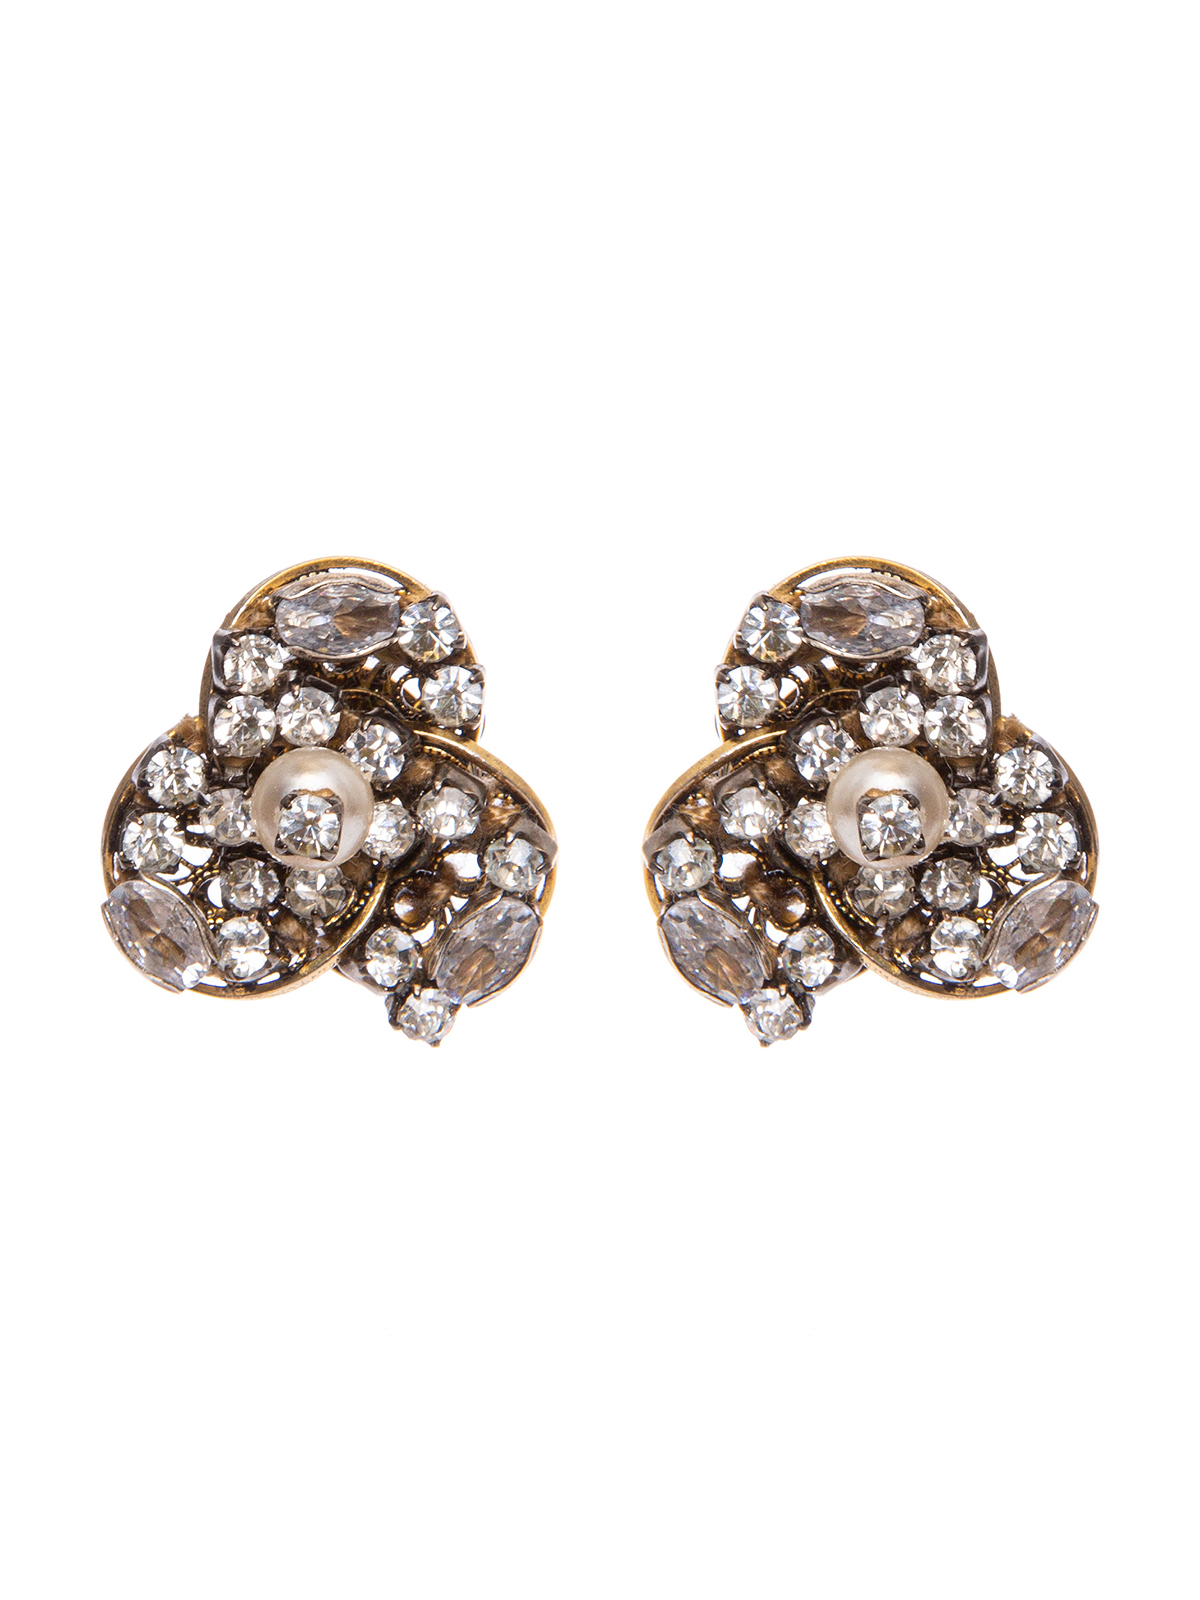 Earrings with crystal petals with central pearl